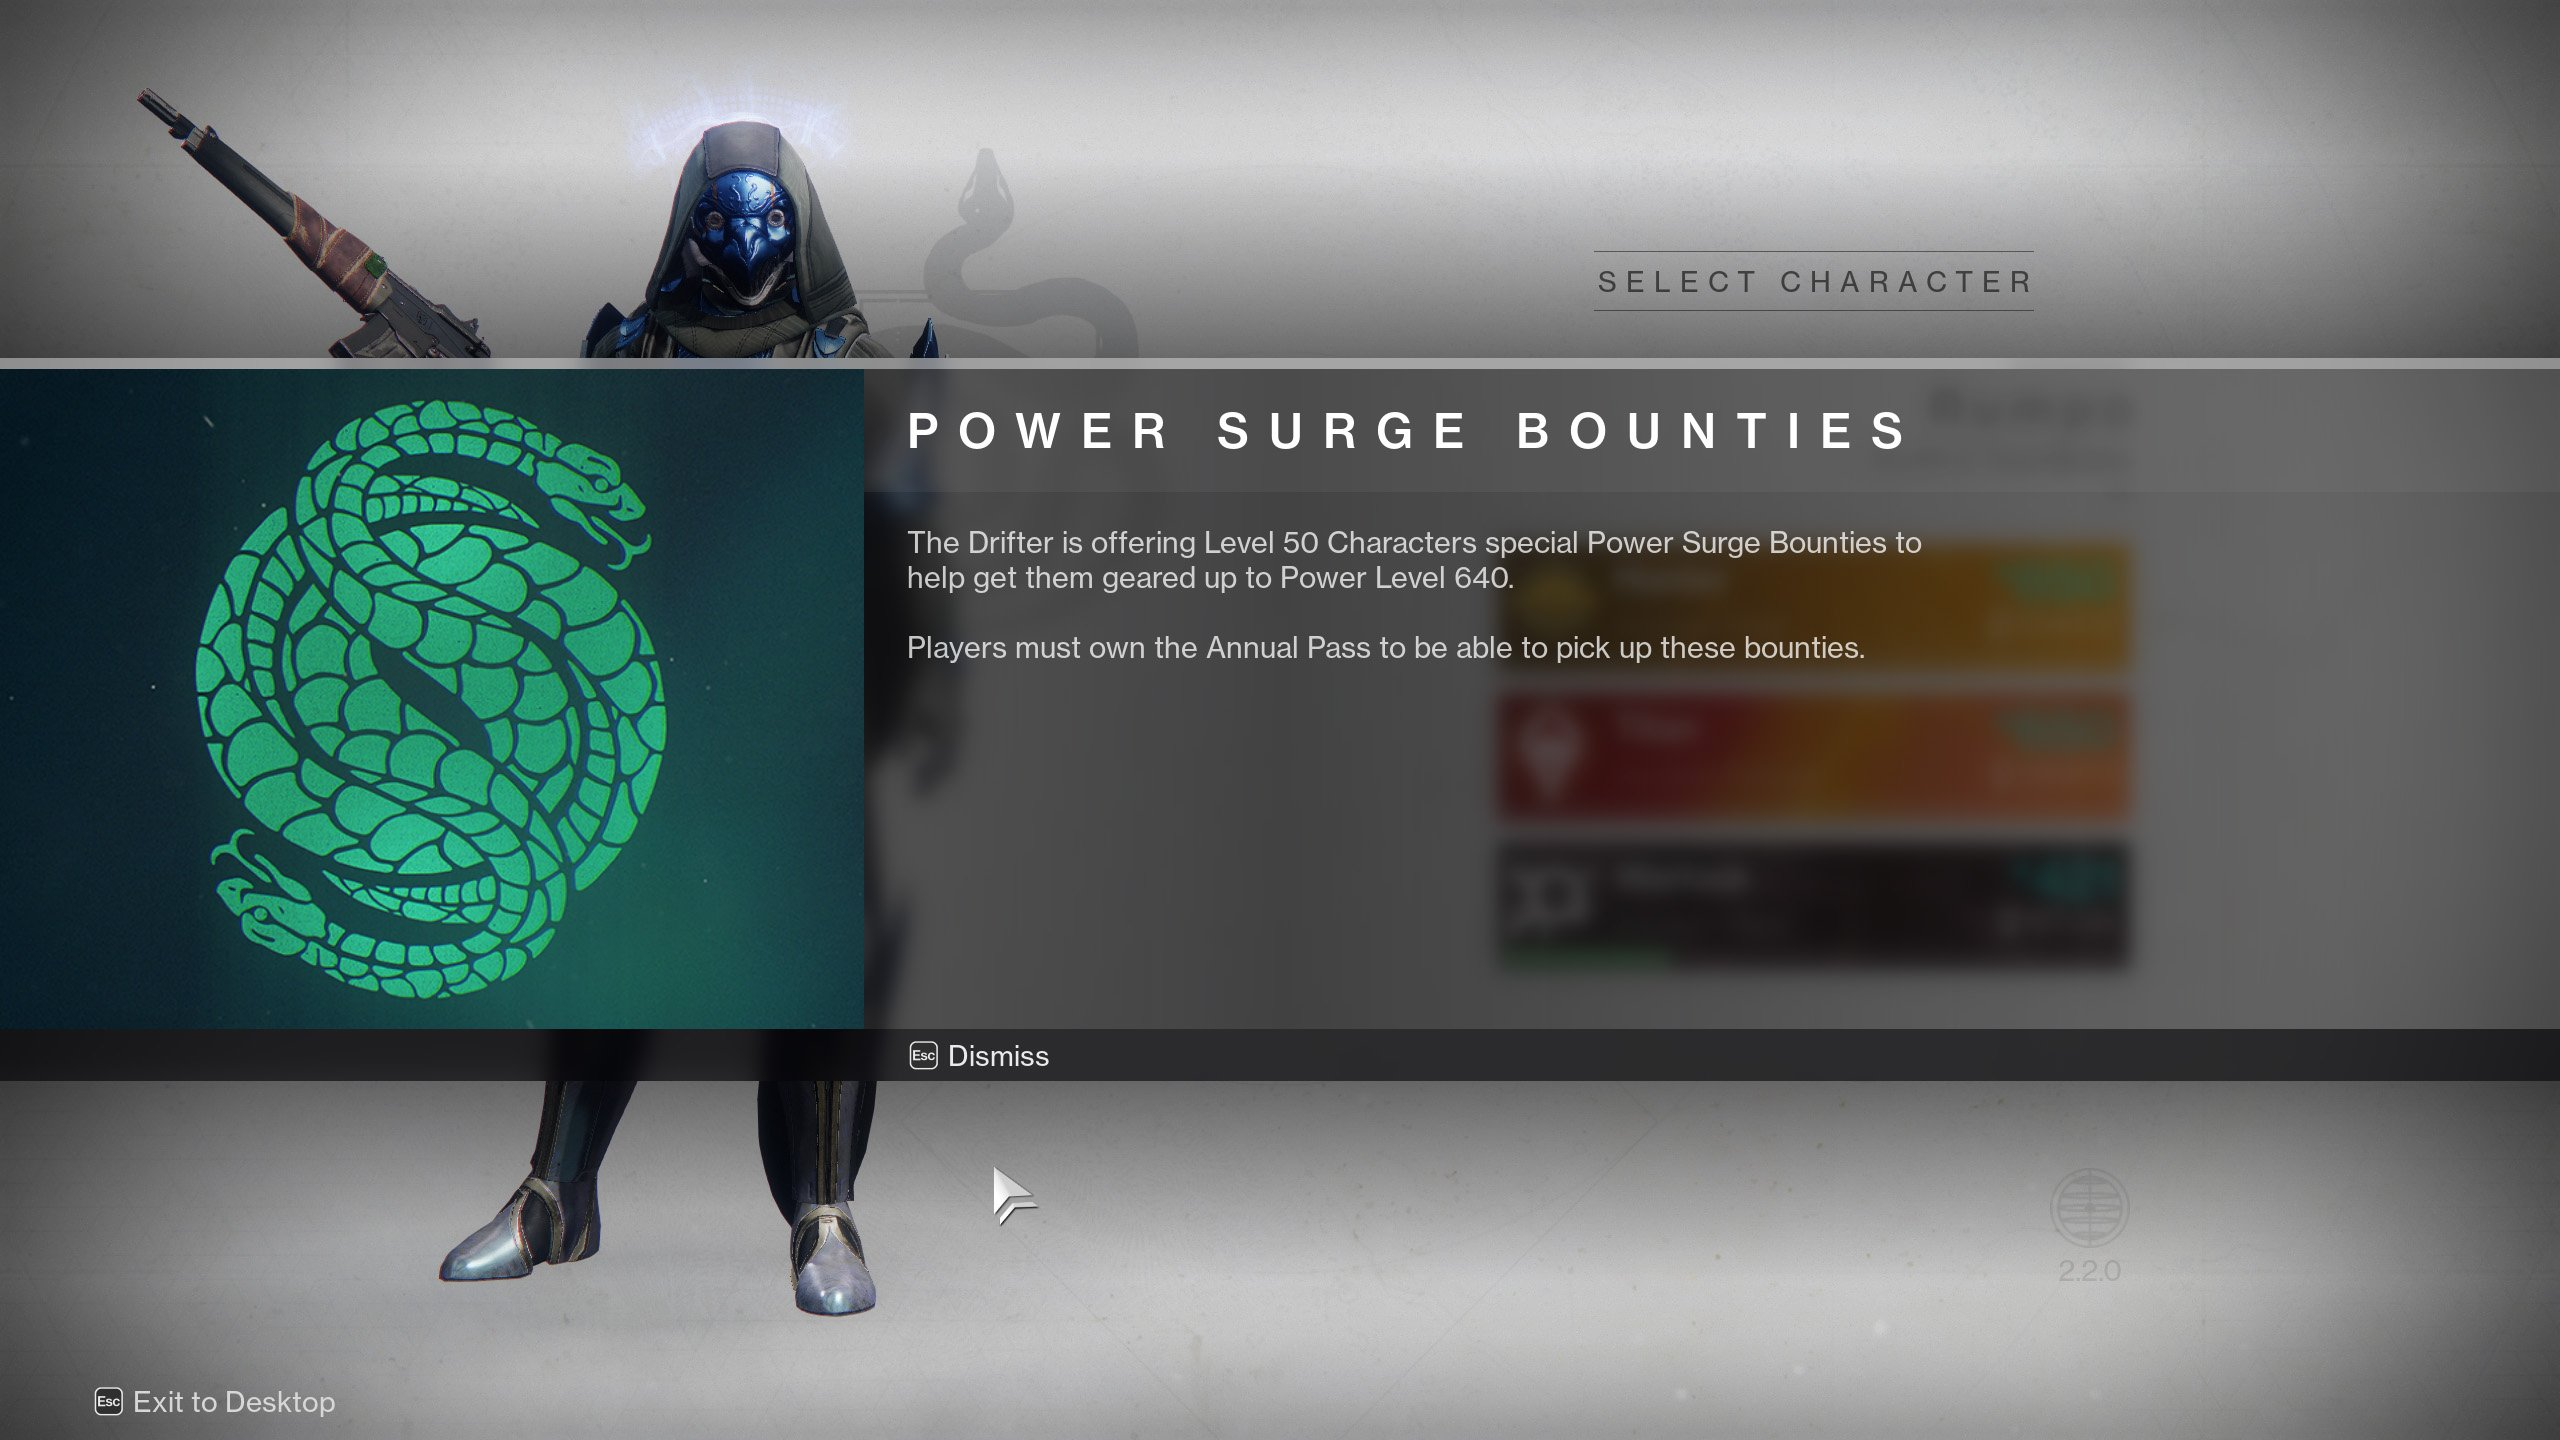 Destiny 2 introduces Power Surge Bounties